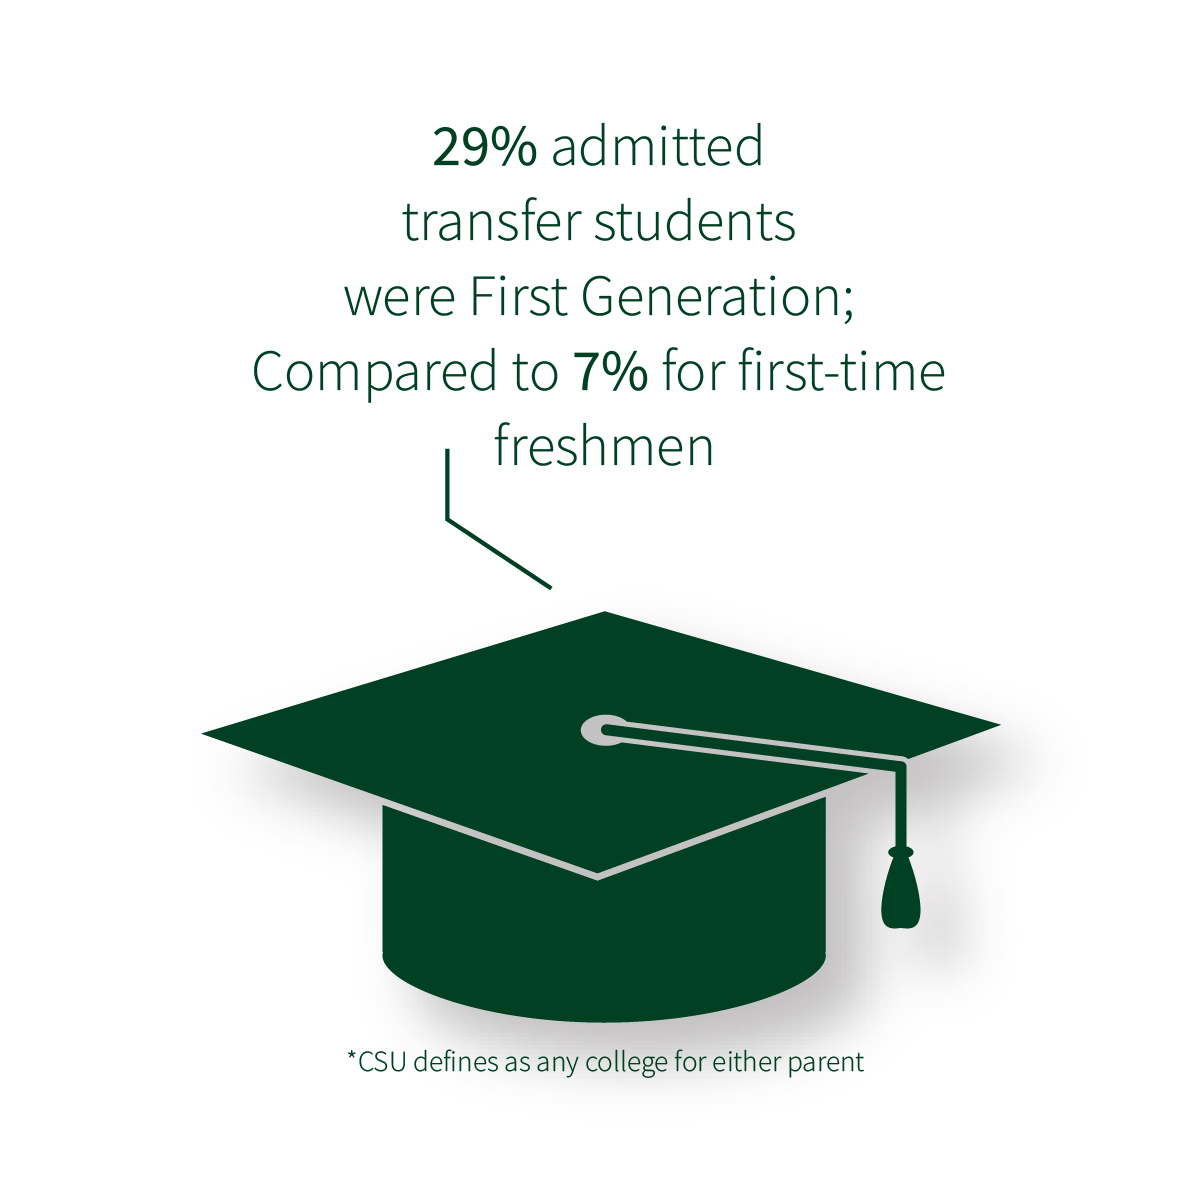 29% admitted transfer students were first generation; compared to 7% for first-time freshman. * CSU defines this as any college for either parent